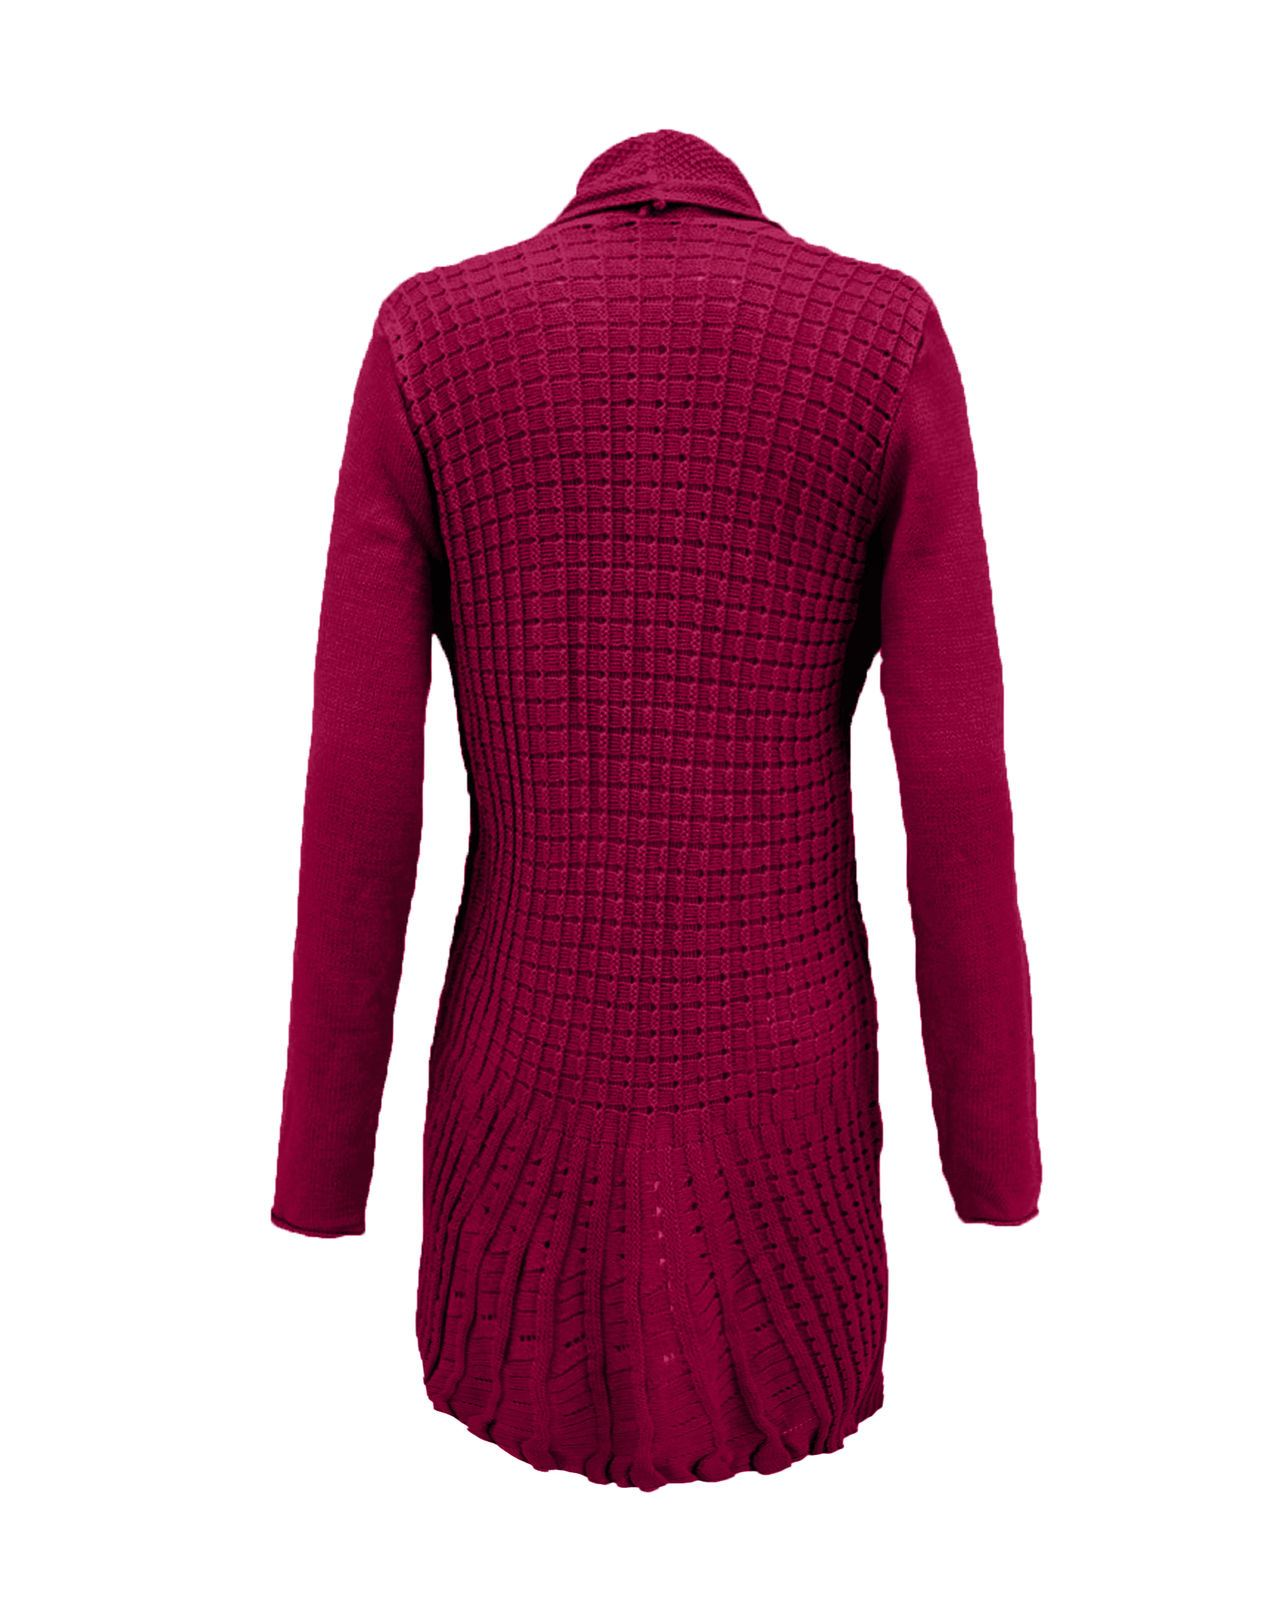 Buy the latest Womens Clothing Online from SurfStitch. New Womens Dresses, Jumpers, Skirts more. Shipping available Australia wide including Sydney, Melbourne, Brisbane, Adelaide, Perth, Hobart & .